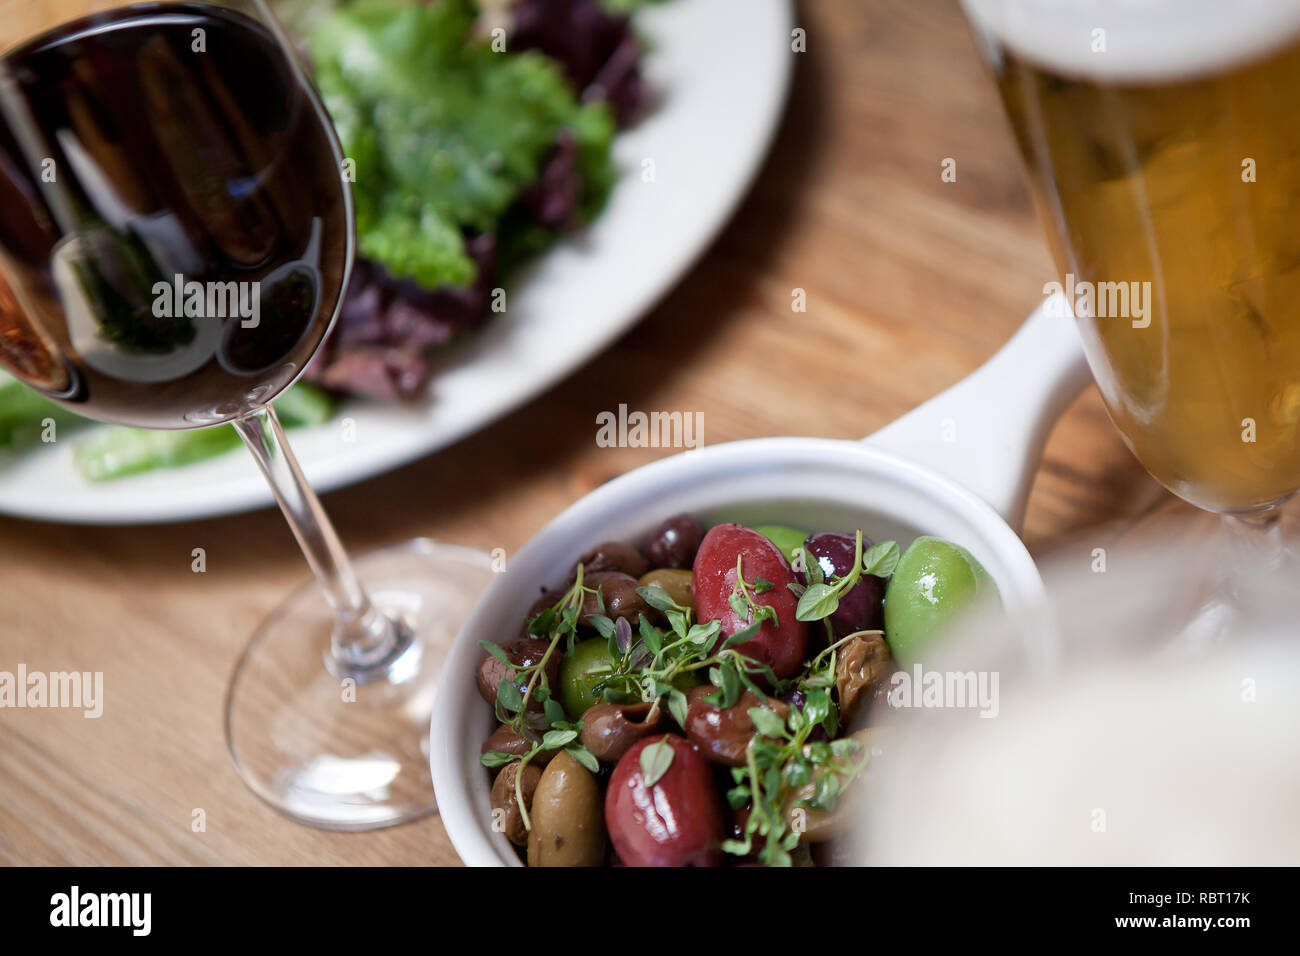 Close up of Italian Olives with Tyme served with meal and wine - Stock Image